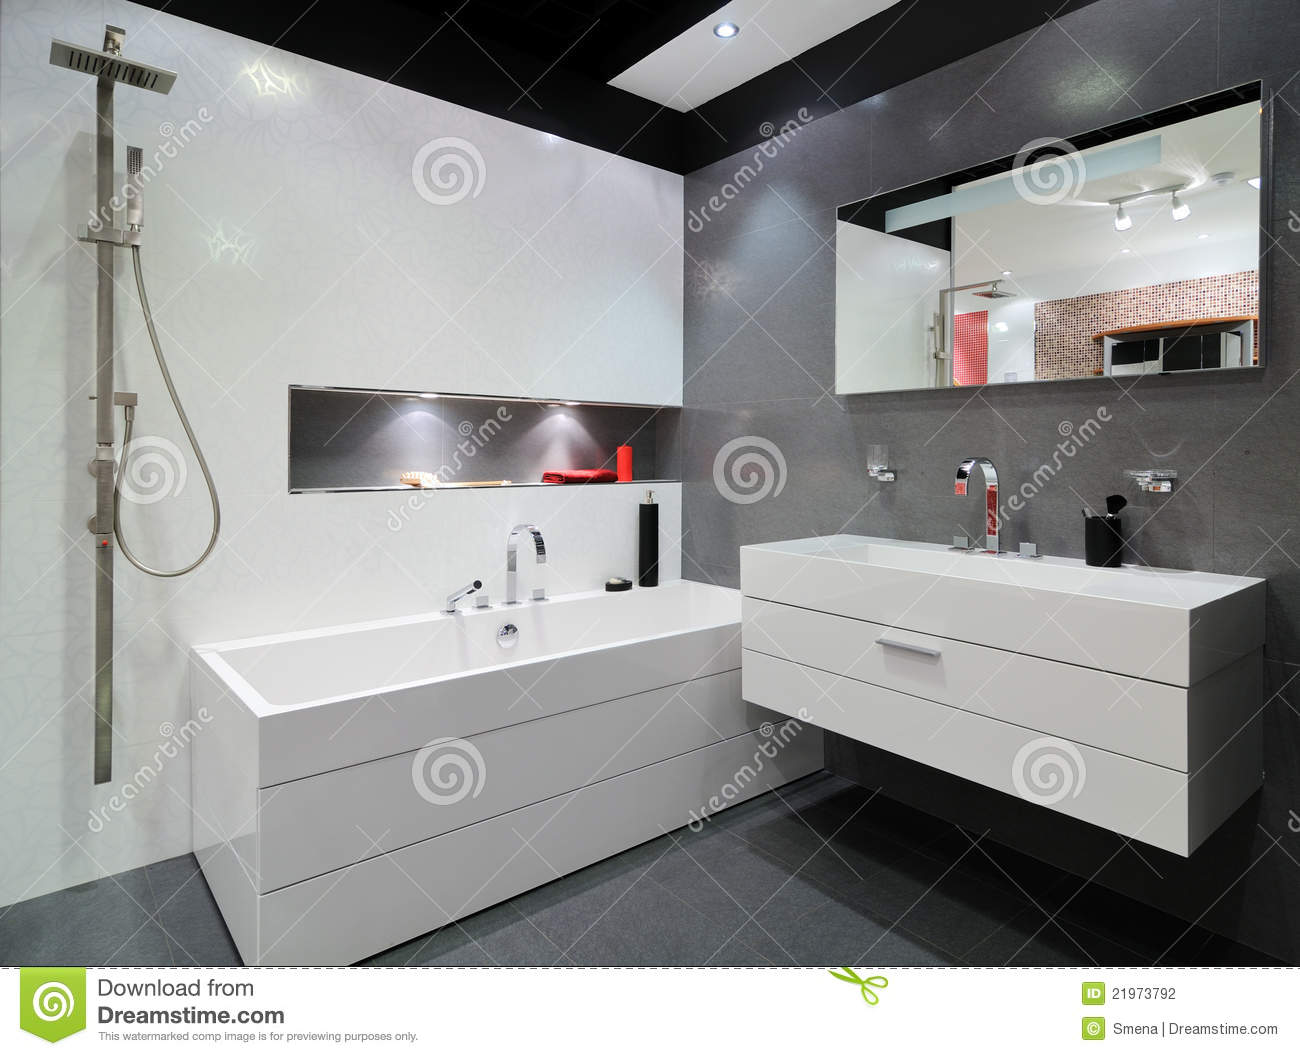 salle de bains grise moderne photo stock image du toilettes maison 21973792. Black Bedroom Furniture Sets. Home Design Ideas